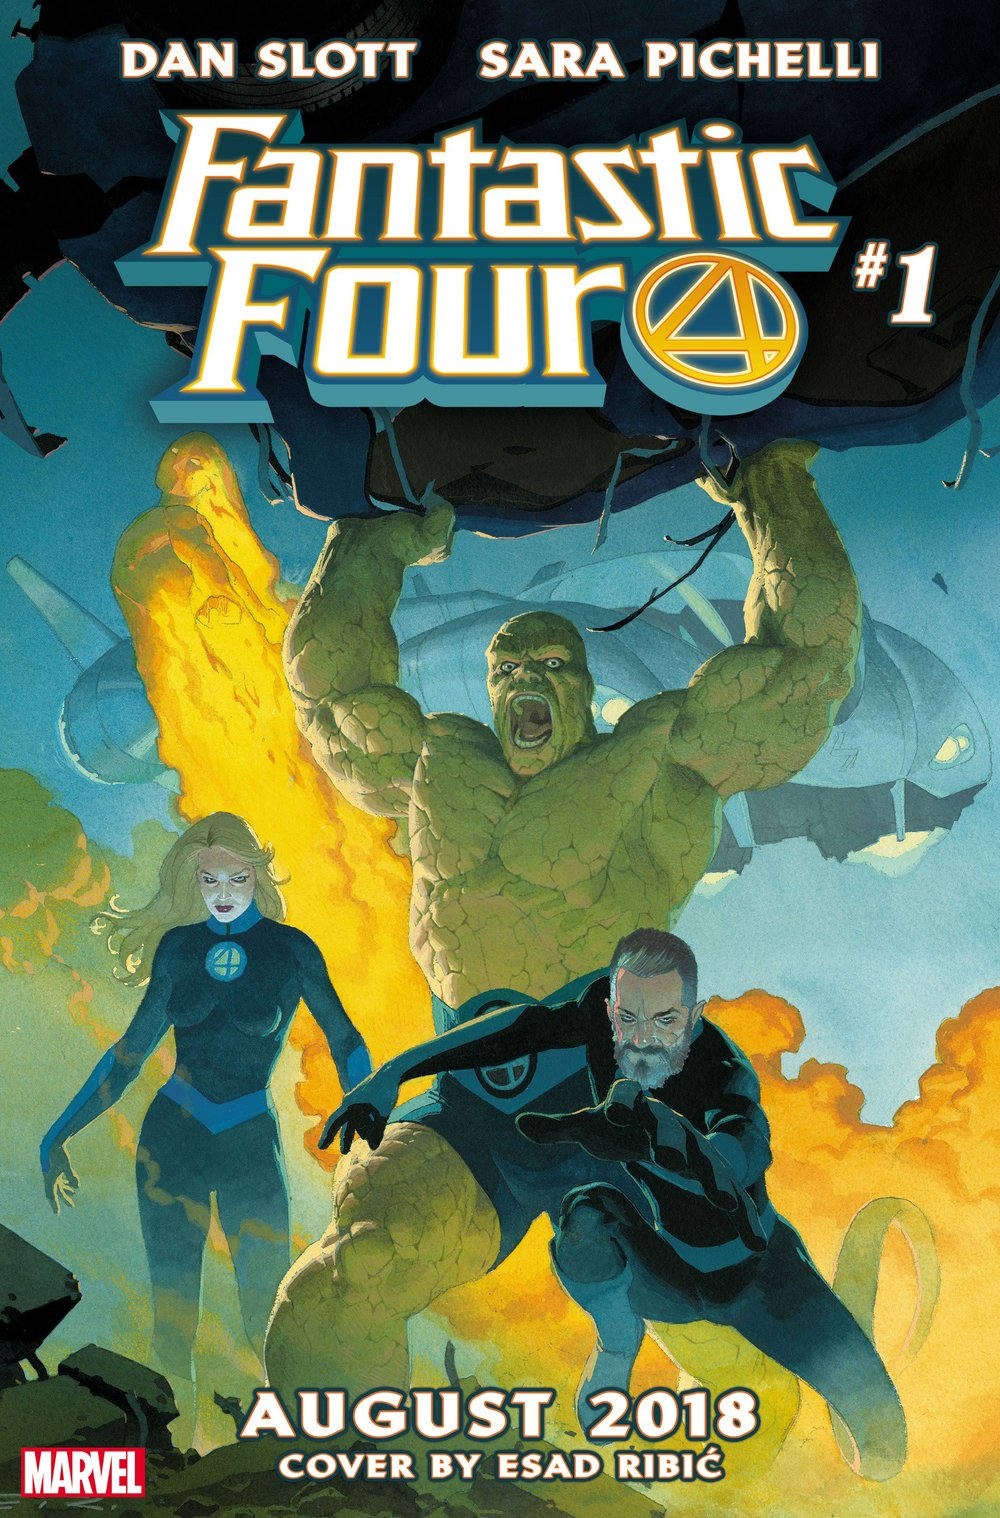 Mr. Fantastic marvel comic Fantastic Four Dan Slott